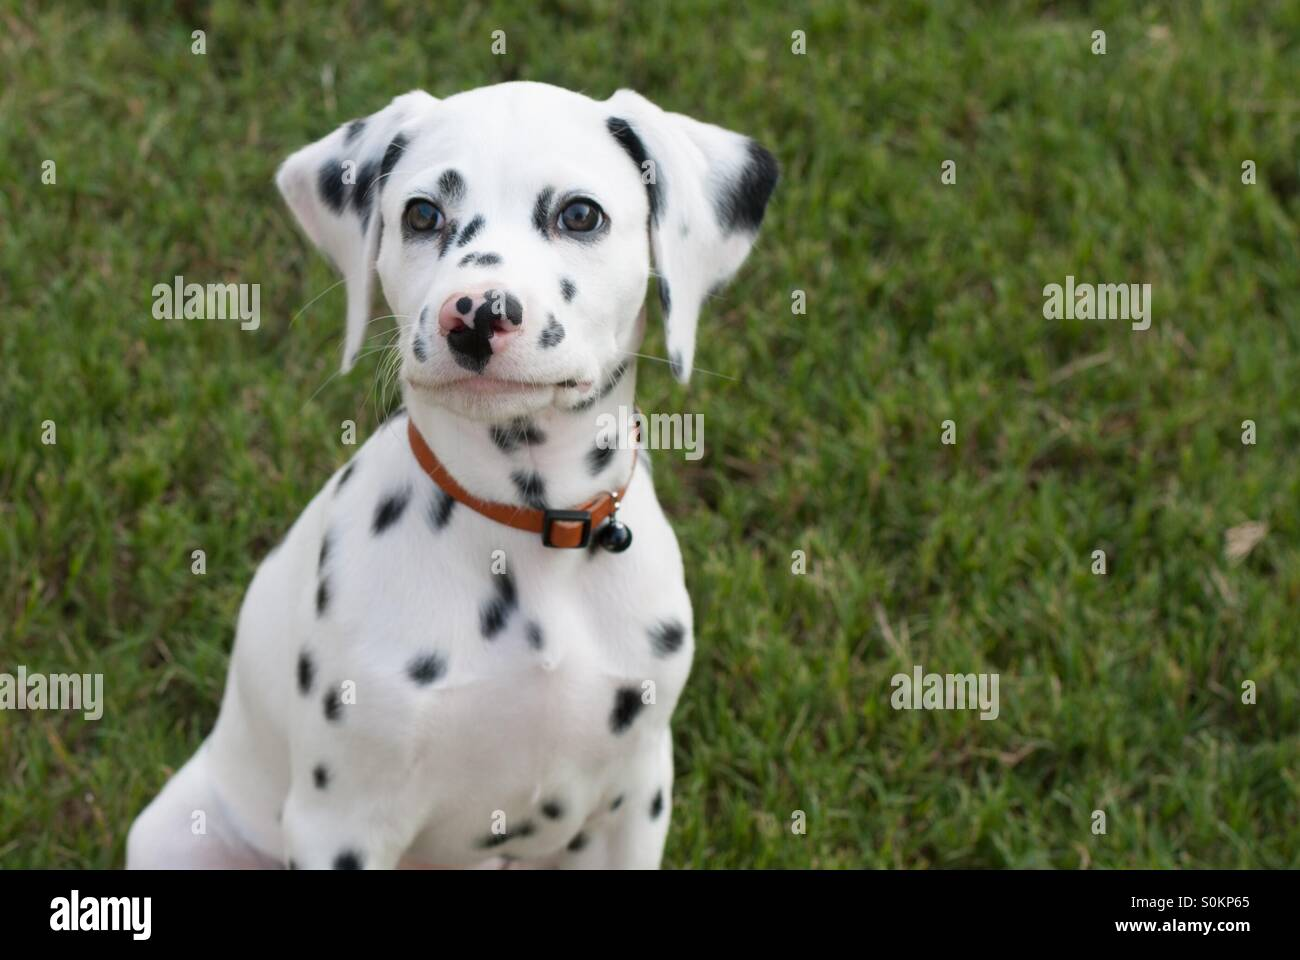 14 week old Dalmatian puppy - Stock Image